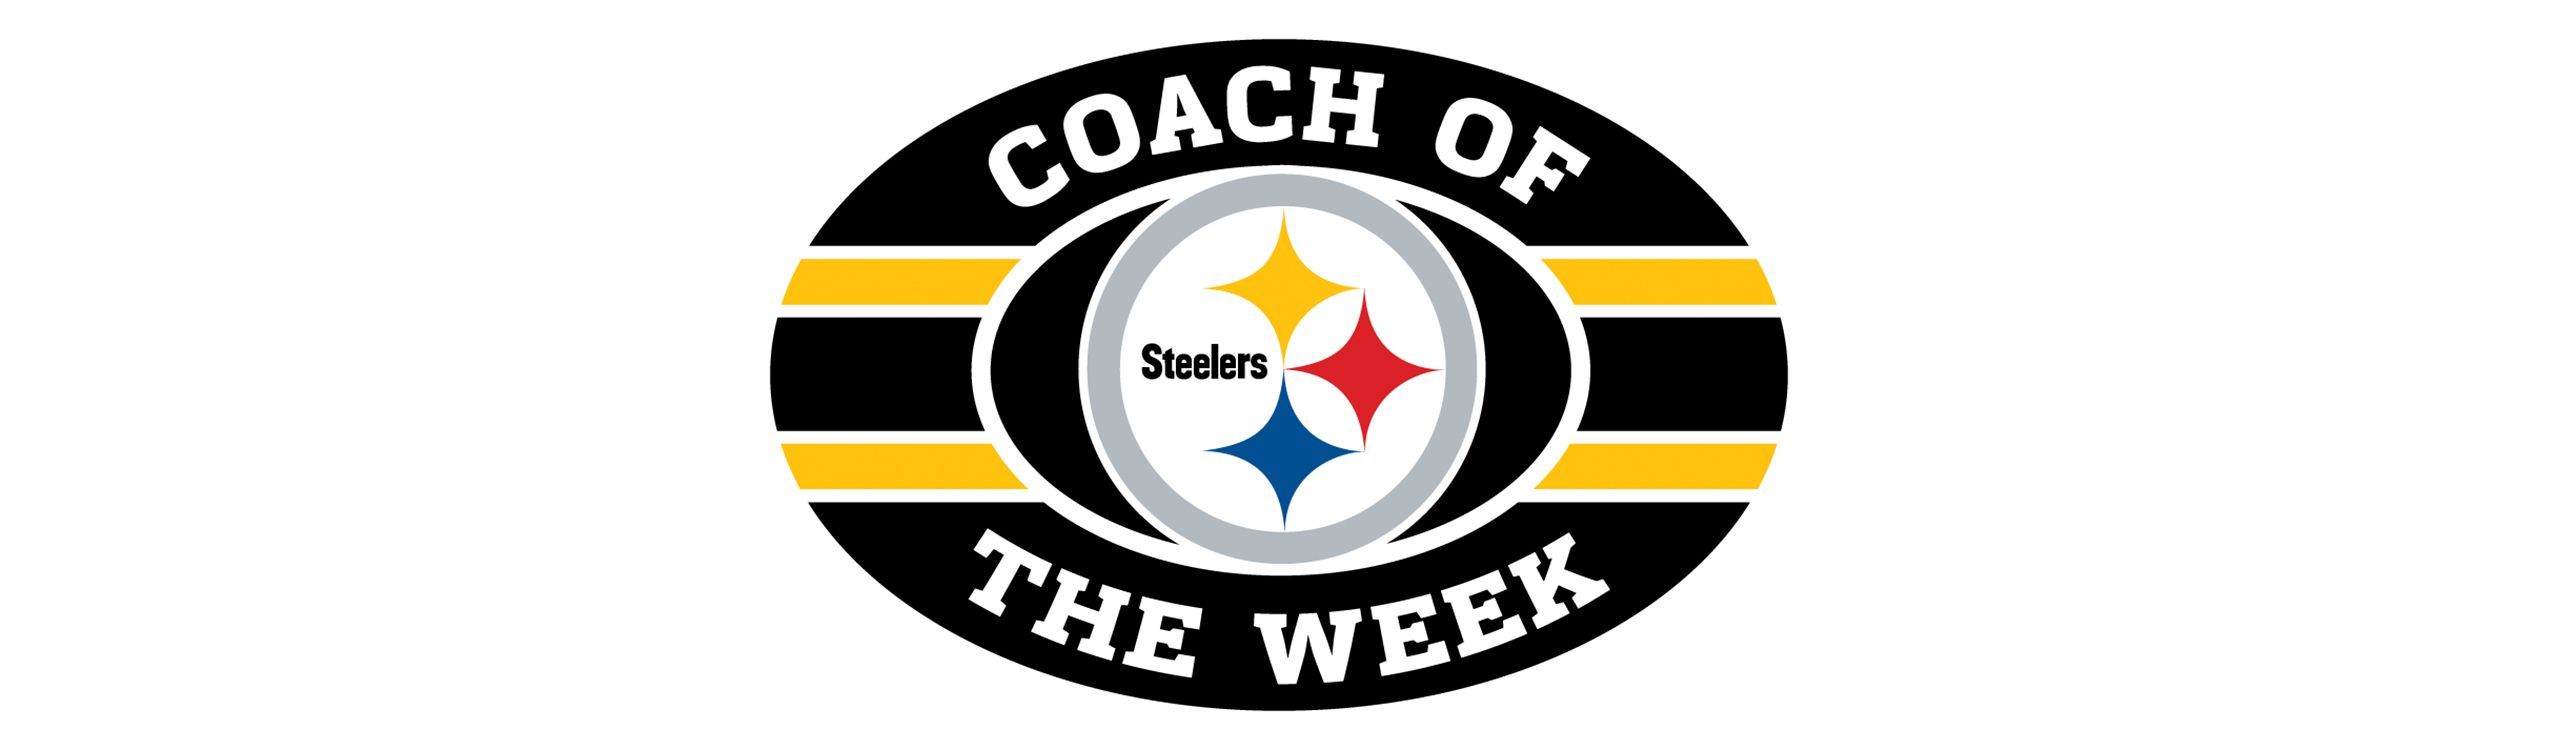 YFB_Coach_Of_The_Week_Logo_Generic_2560x750